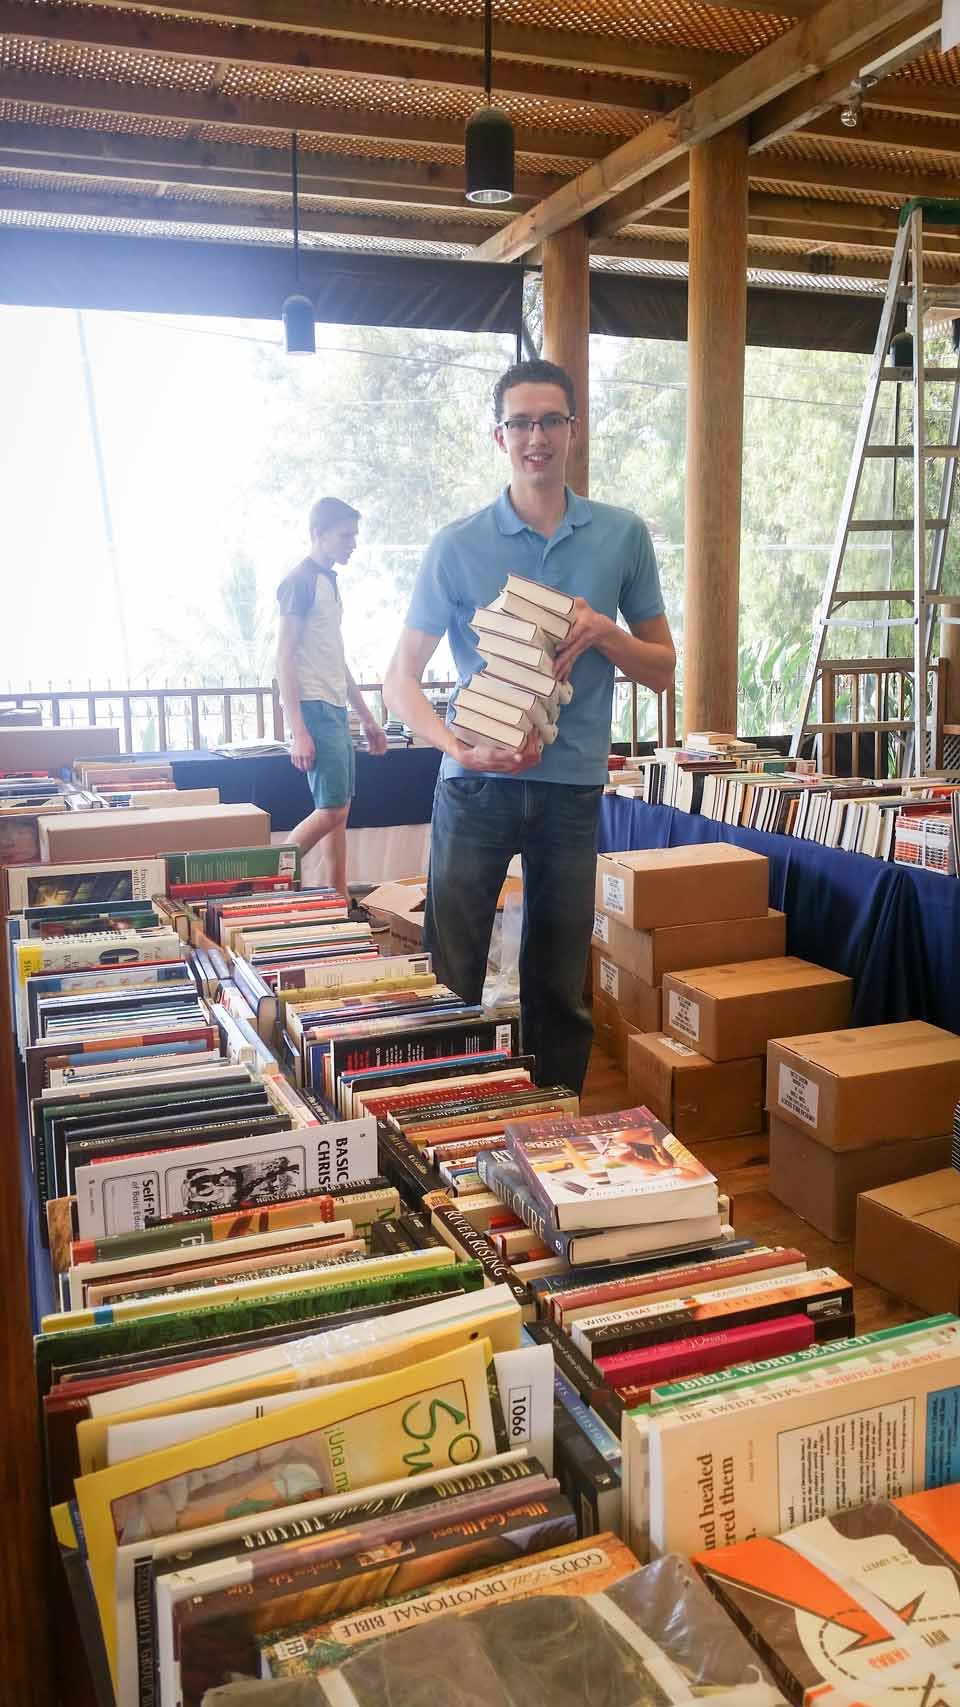 Assisting TJ with setting up his thousands of books for distribution at the Intermissions Conference! Check out Resourcing NOW on Facebook:https://www.facebook.com/ResourcingNow